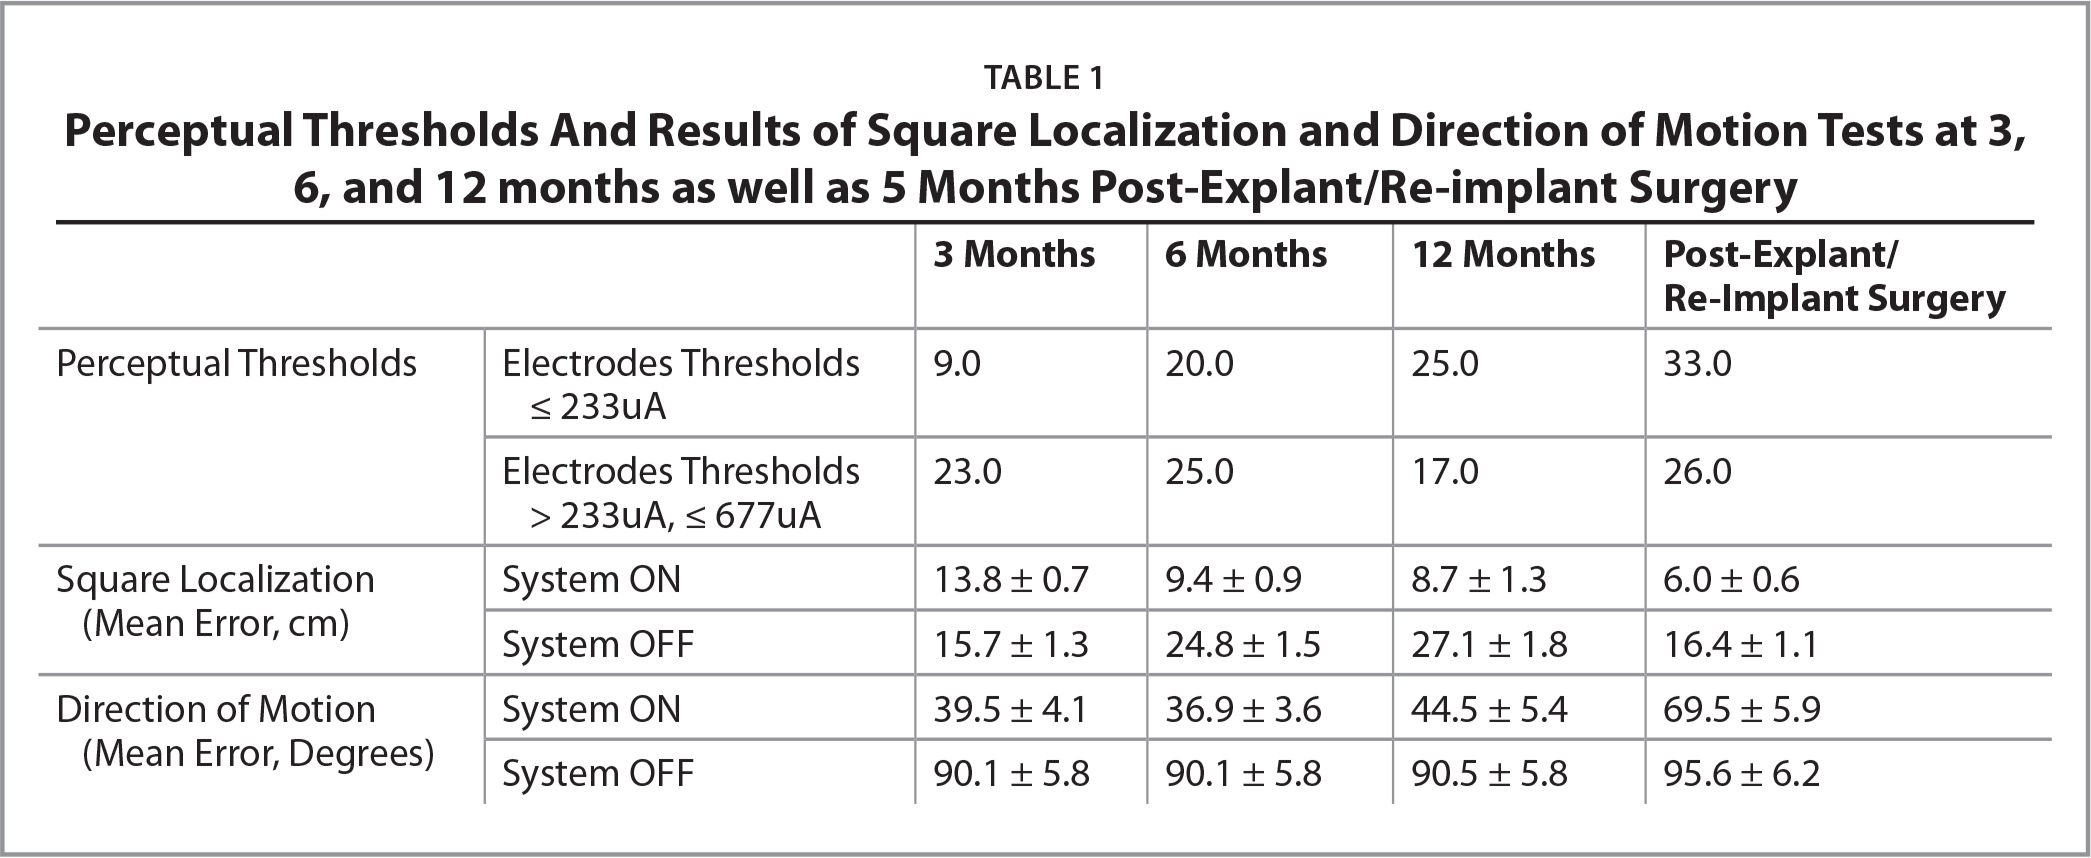 Perceptual Thresholds And Results of Square Localization and Direction of Motion Tests at 3, 6, and 12 months as well as 5 Months Post-Explant/Re-implant Surgery